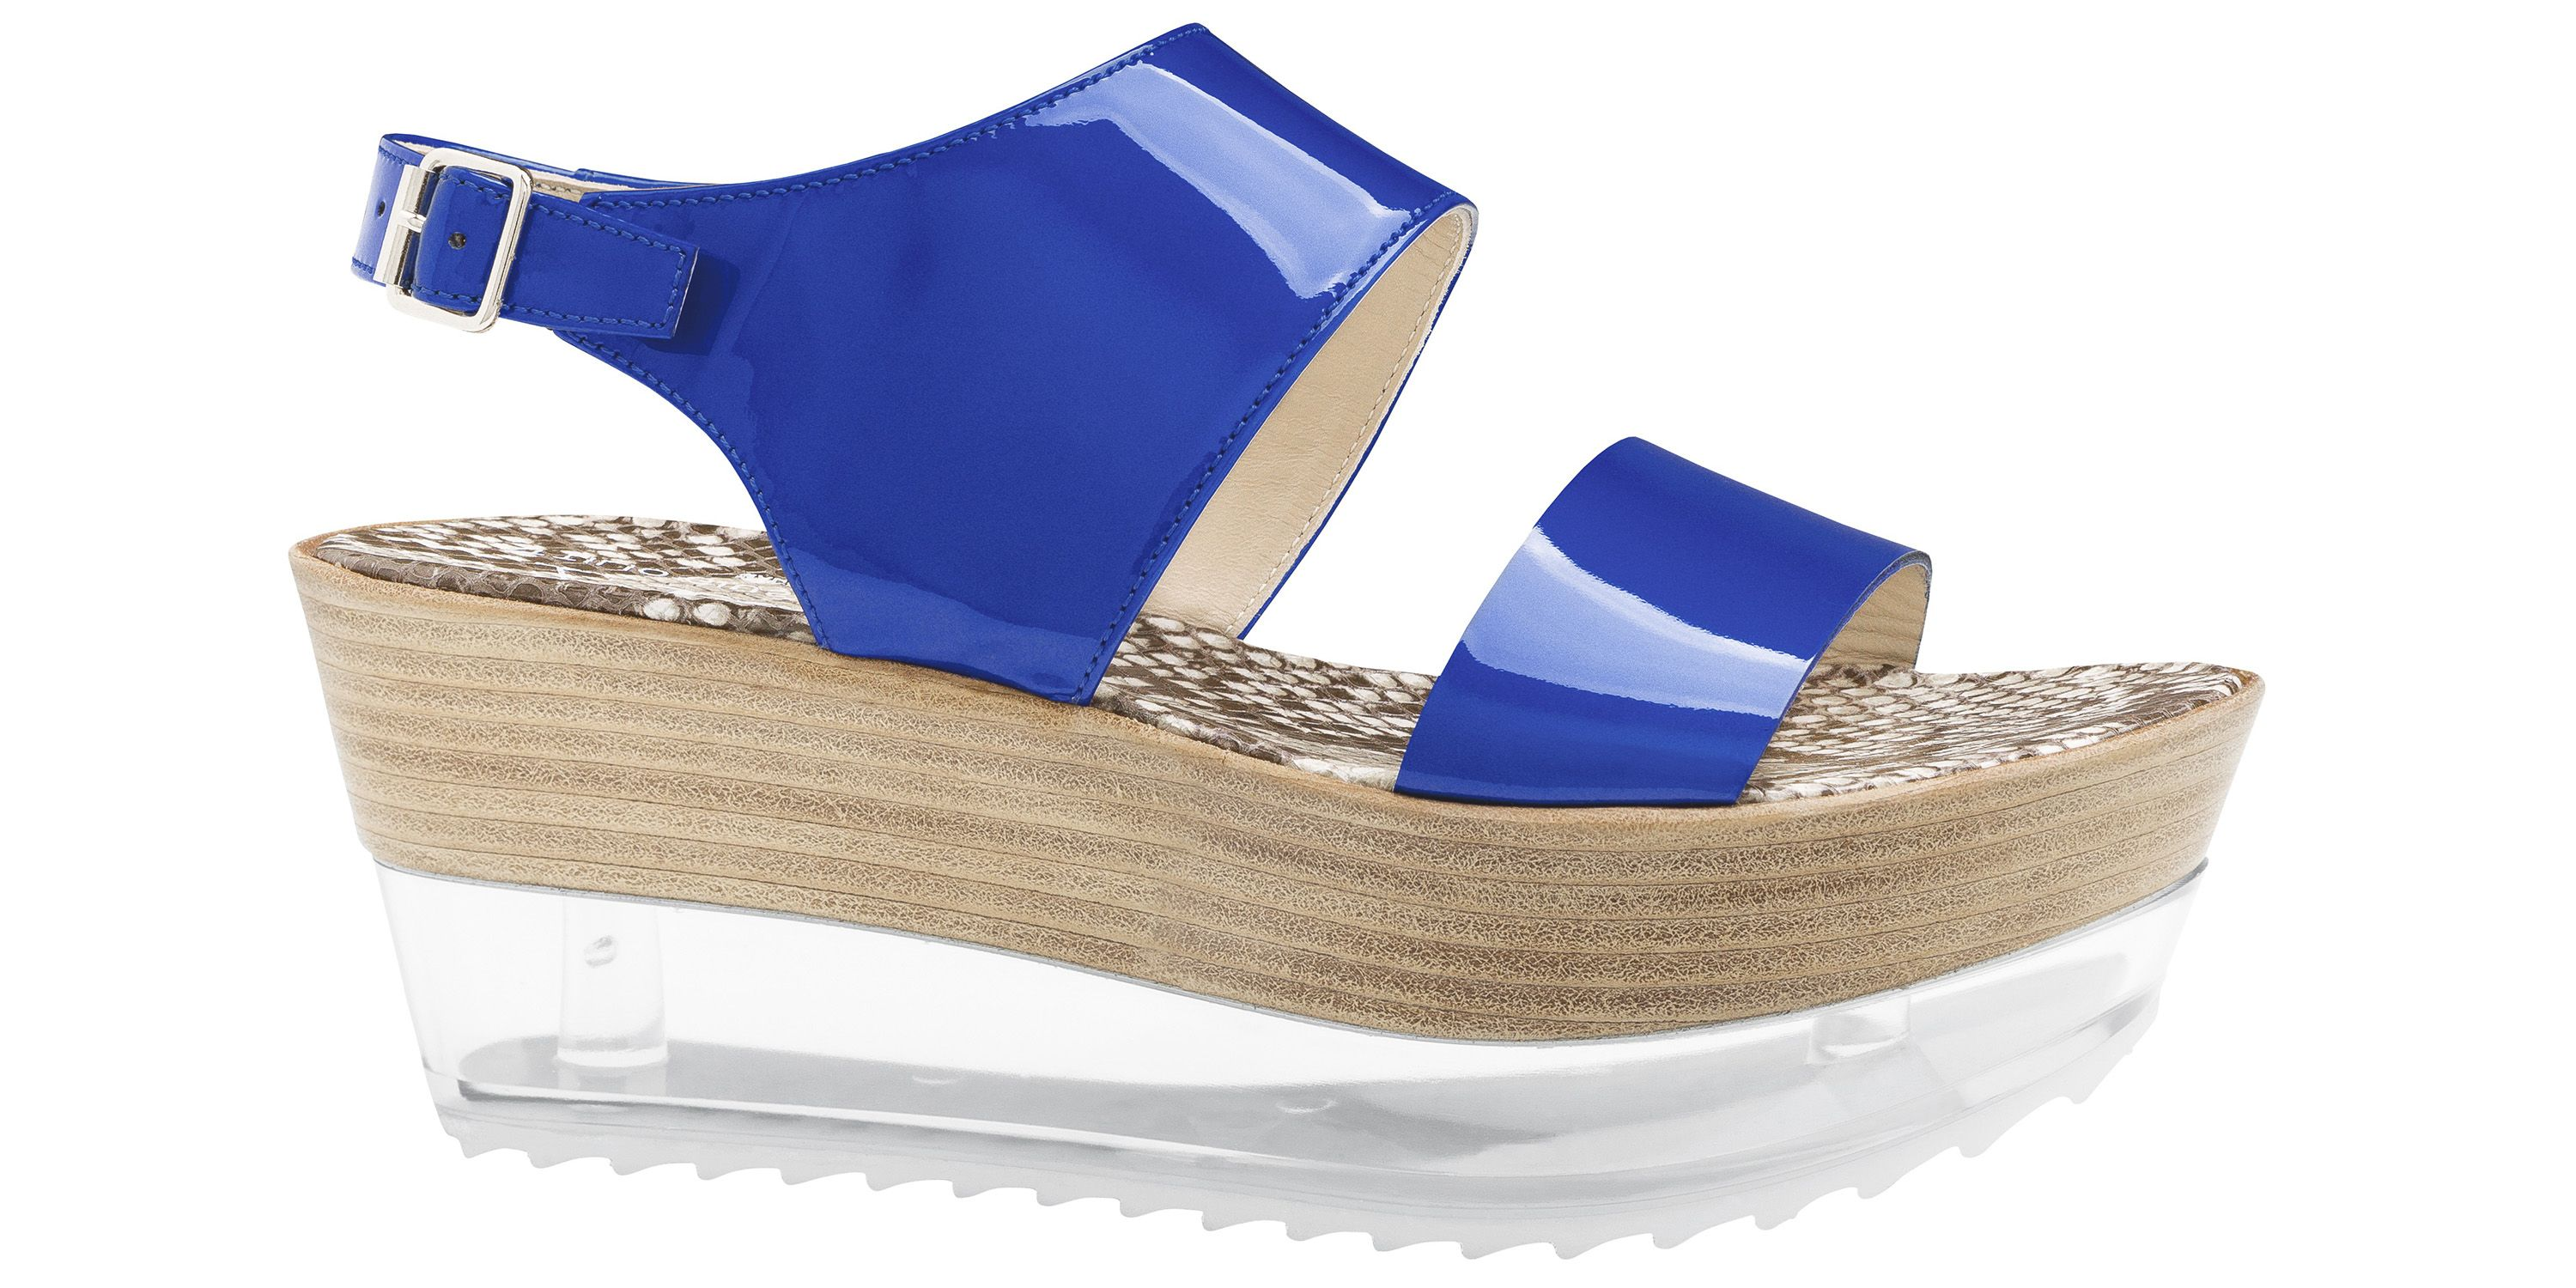 "<strong>AGL </strong>sandals, $252, similar styles available at <a target=""_blank"" href=""http://shop.nordstrom.com/sr?origin=keywordsearch&contextualcategoryid=2372949&keyword=AGL"">nordstrom.com</a>."